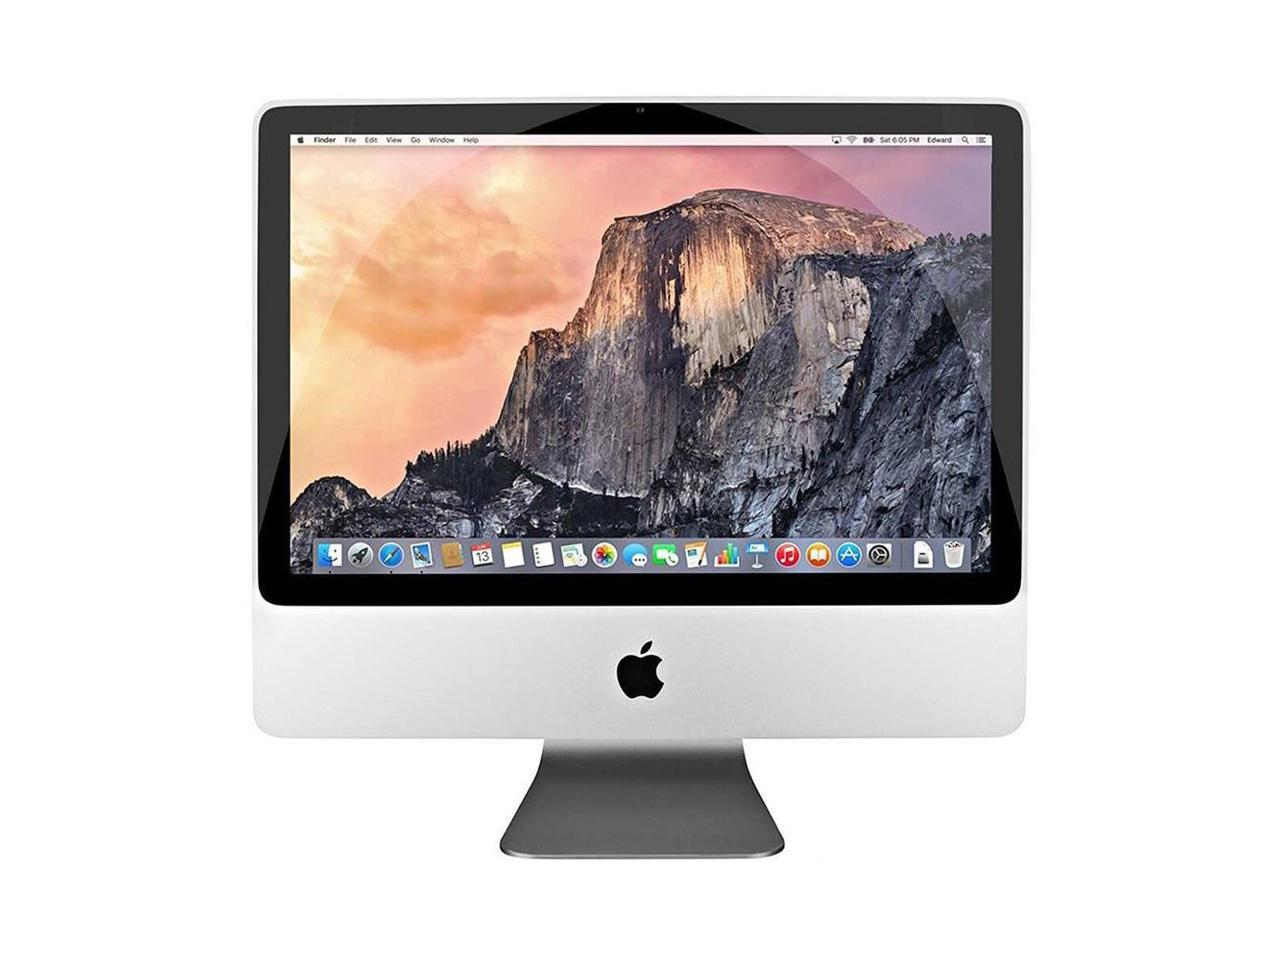 iMac front view